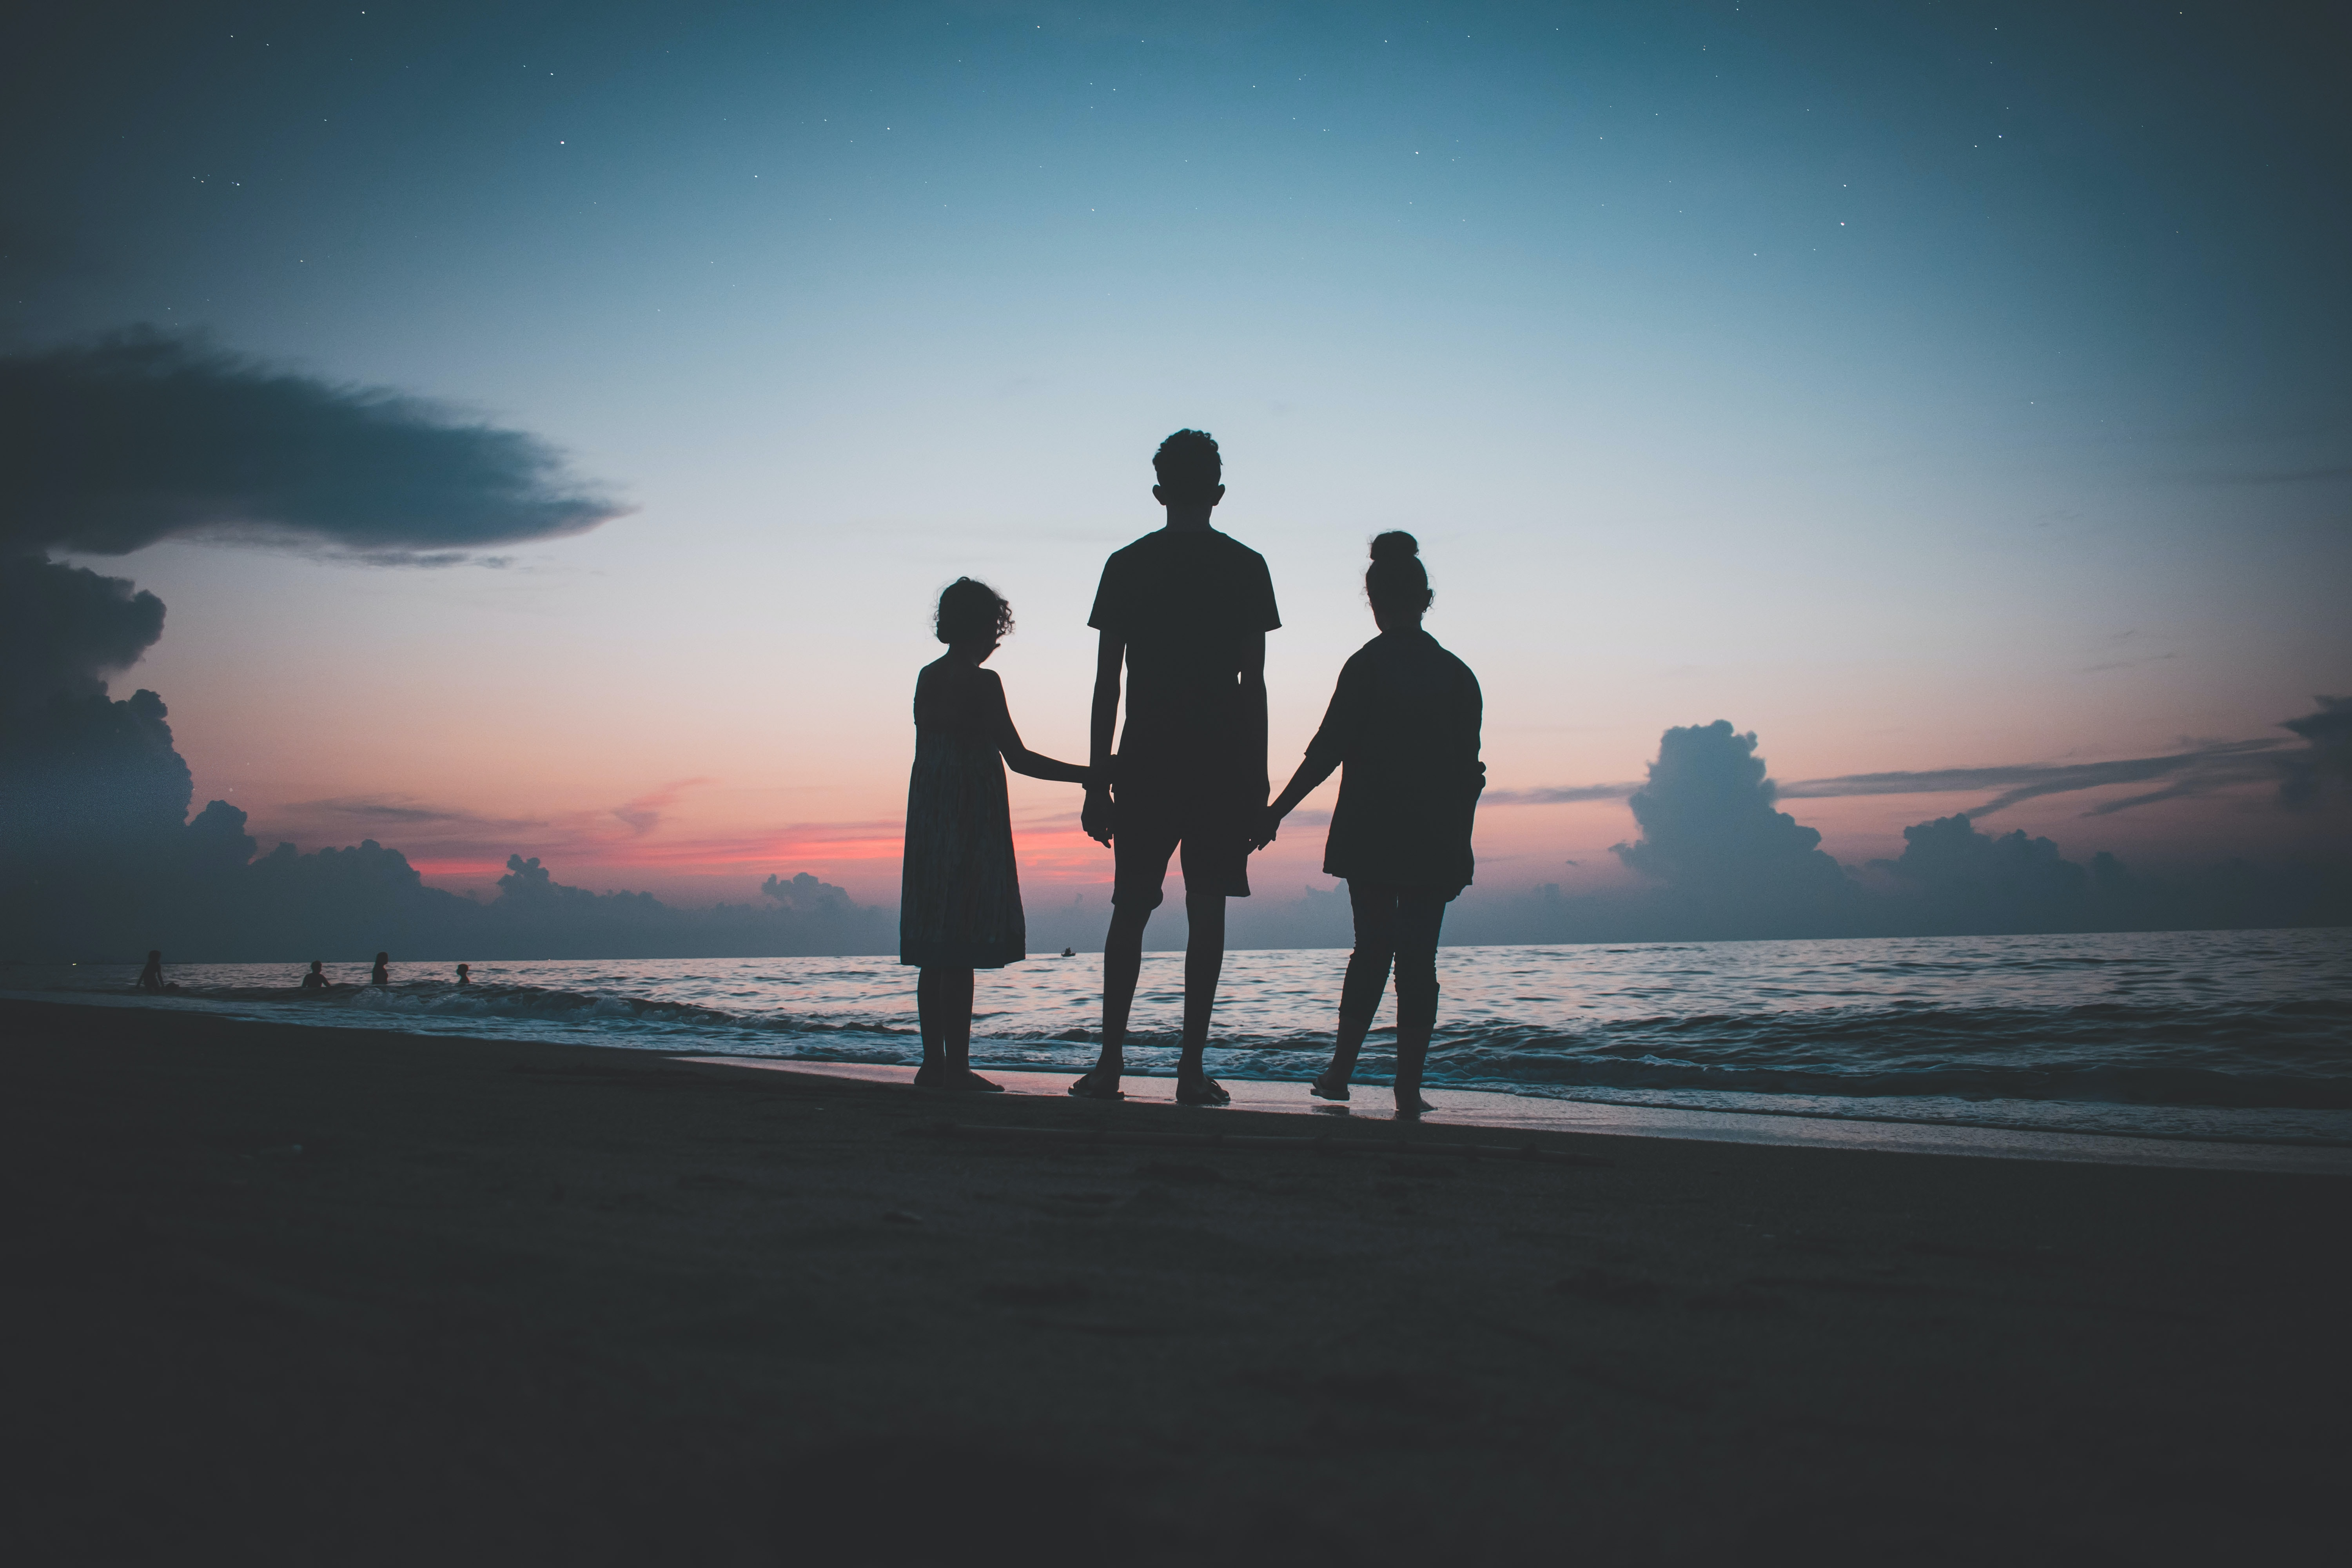 A family holding hands on a beach in front of the ocean during sunset.